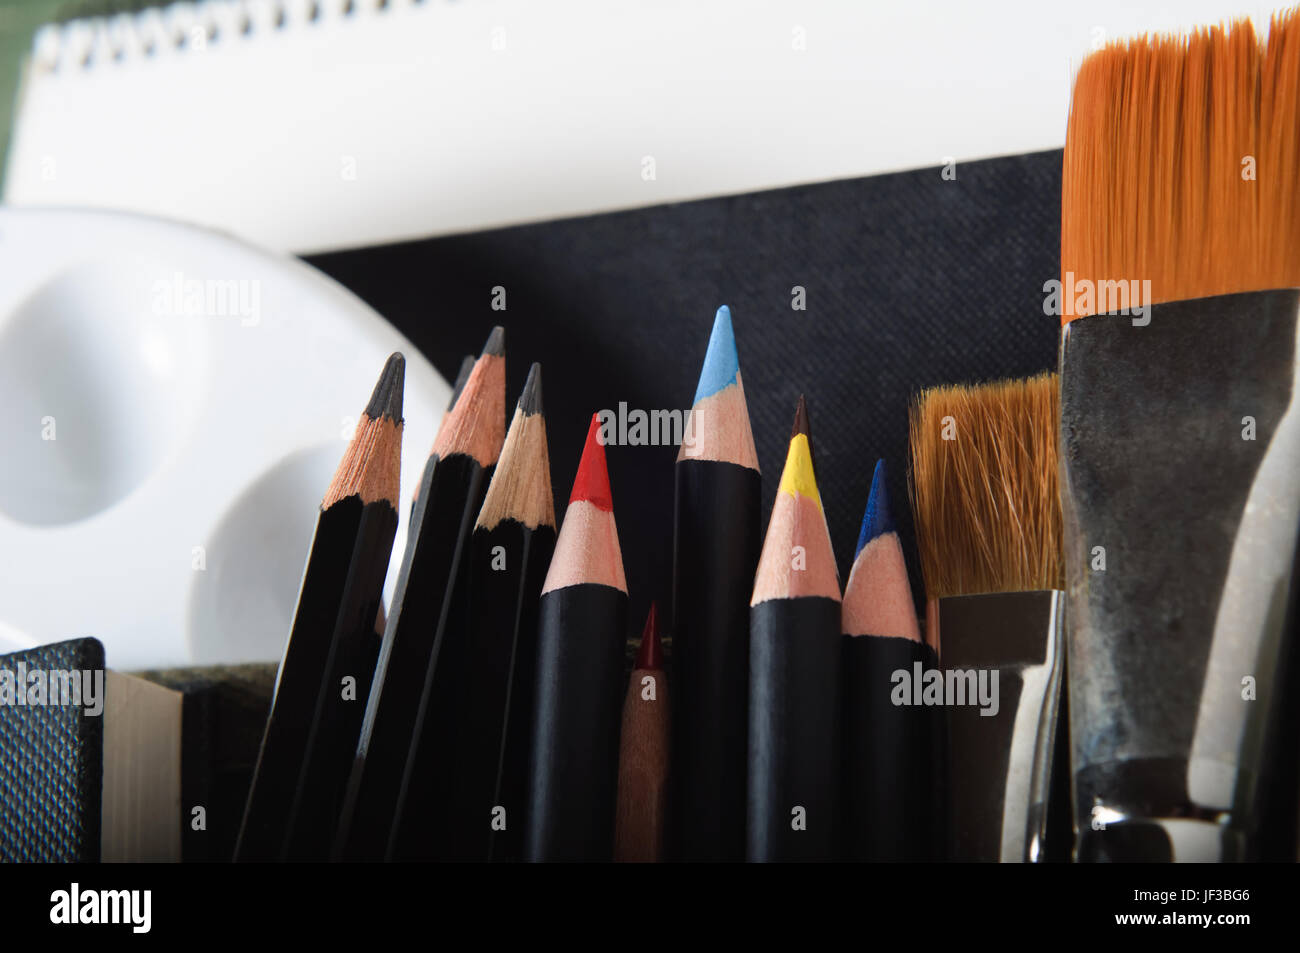 Close up of a selection of artist's tools and materials.  Horizontal (landscape) orientation. - Stock Image